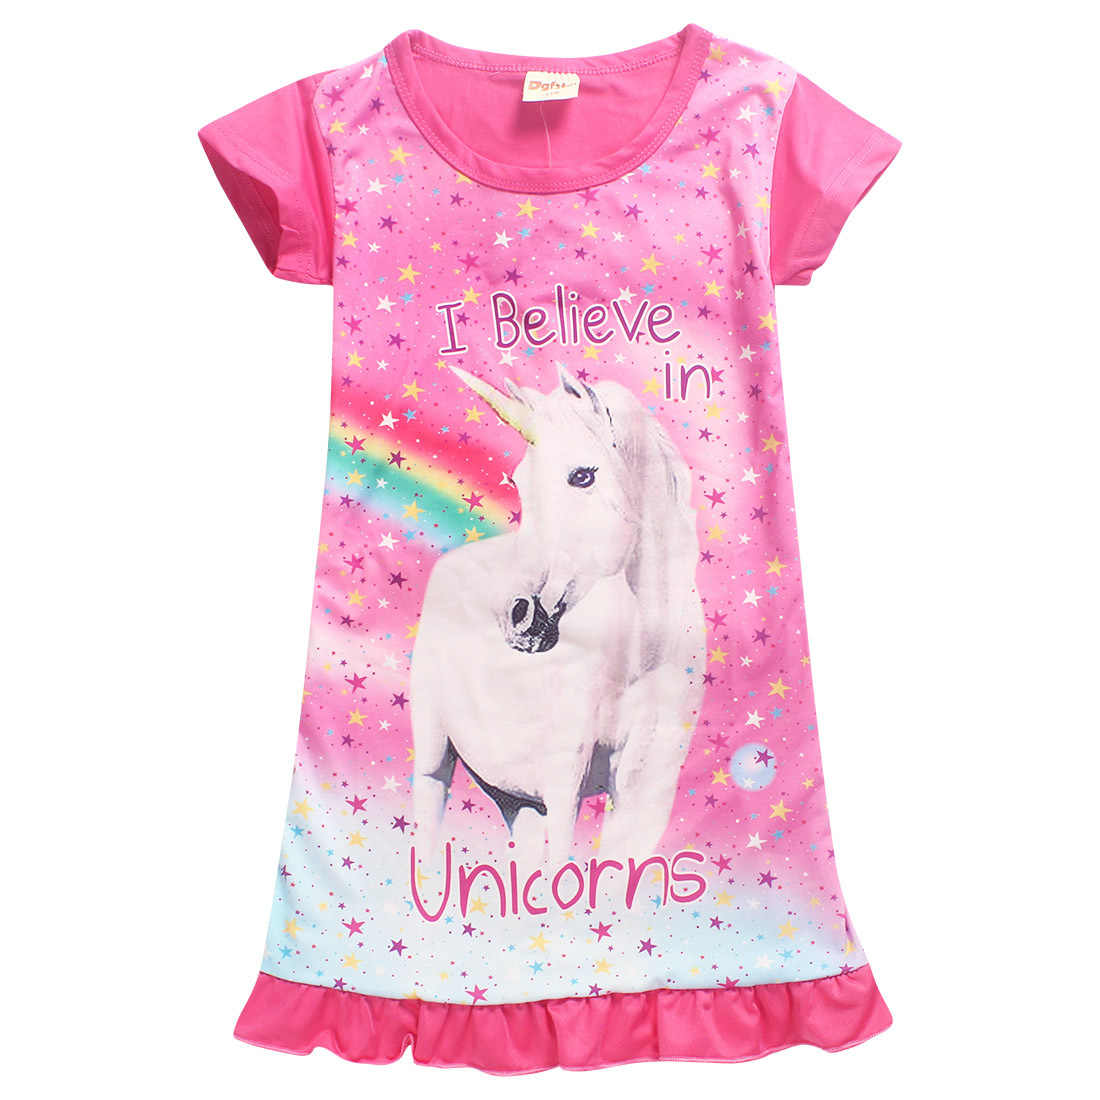 21d95f92a9d0 Detail Feedback Questions about Girls Dresses 2019 Summer Cartoon Baby kids  Nightgowns Girl Princess Unicorn Costume Children Clothing for 3 10Y on ...